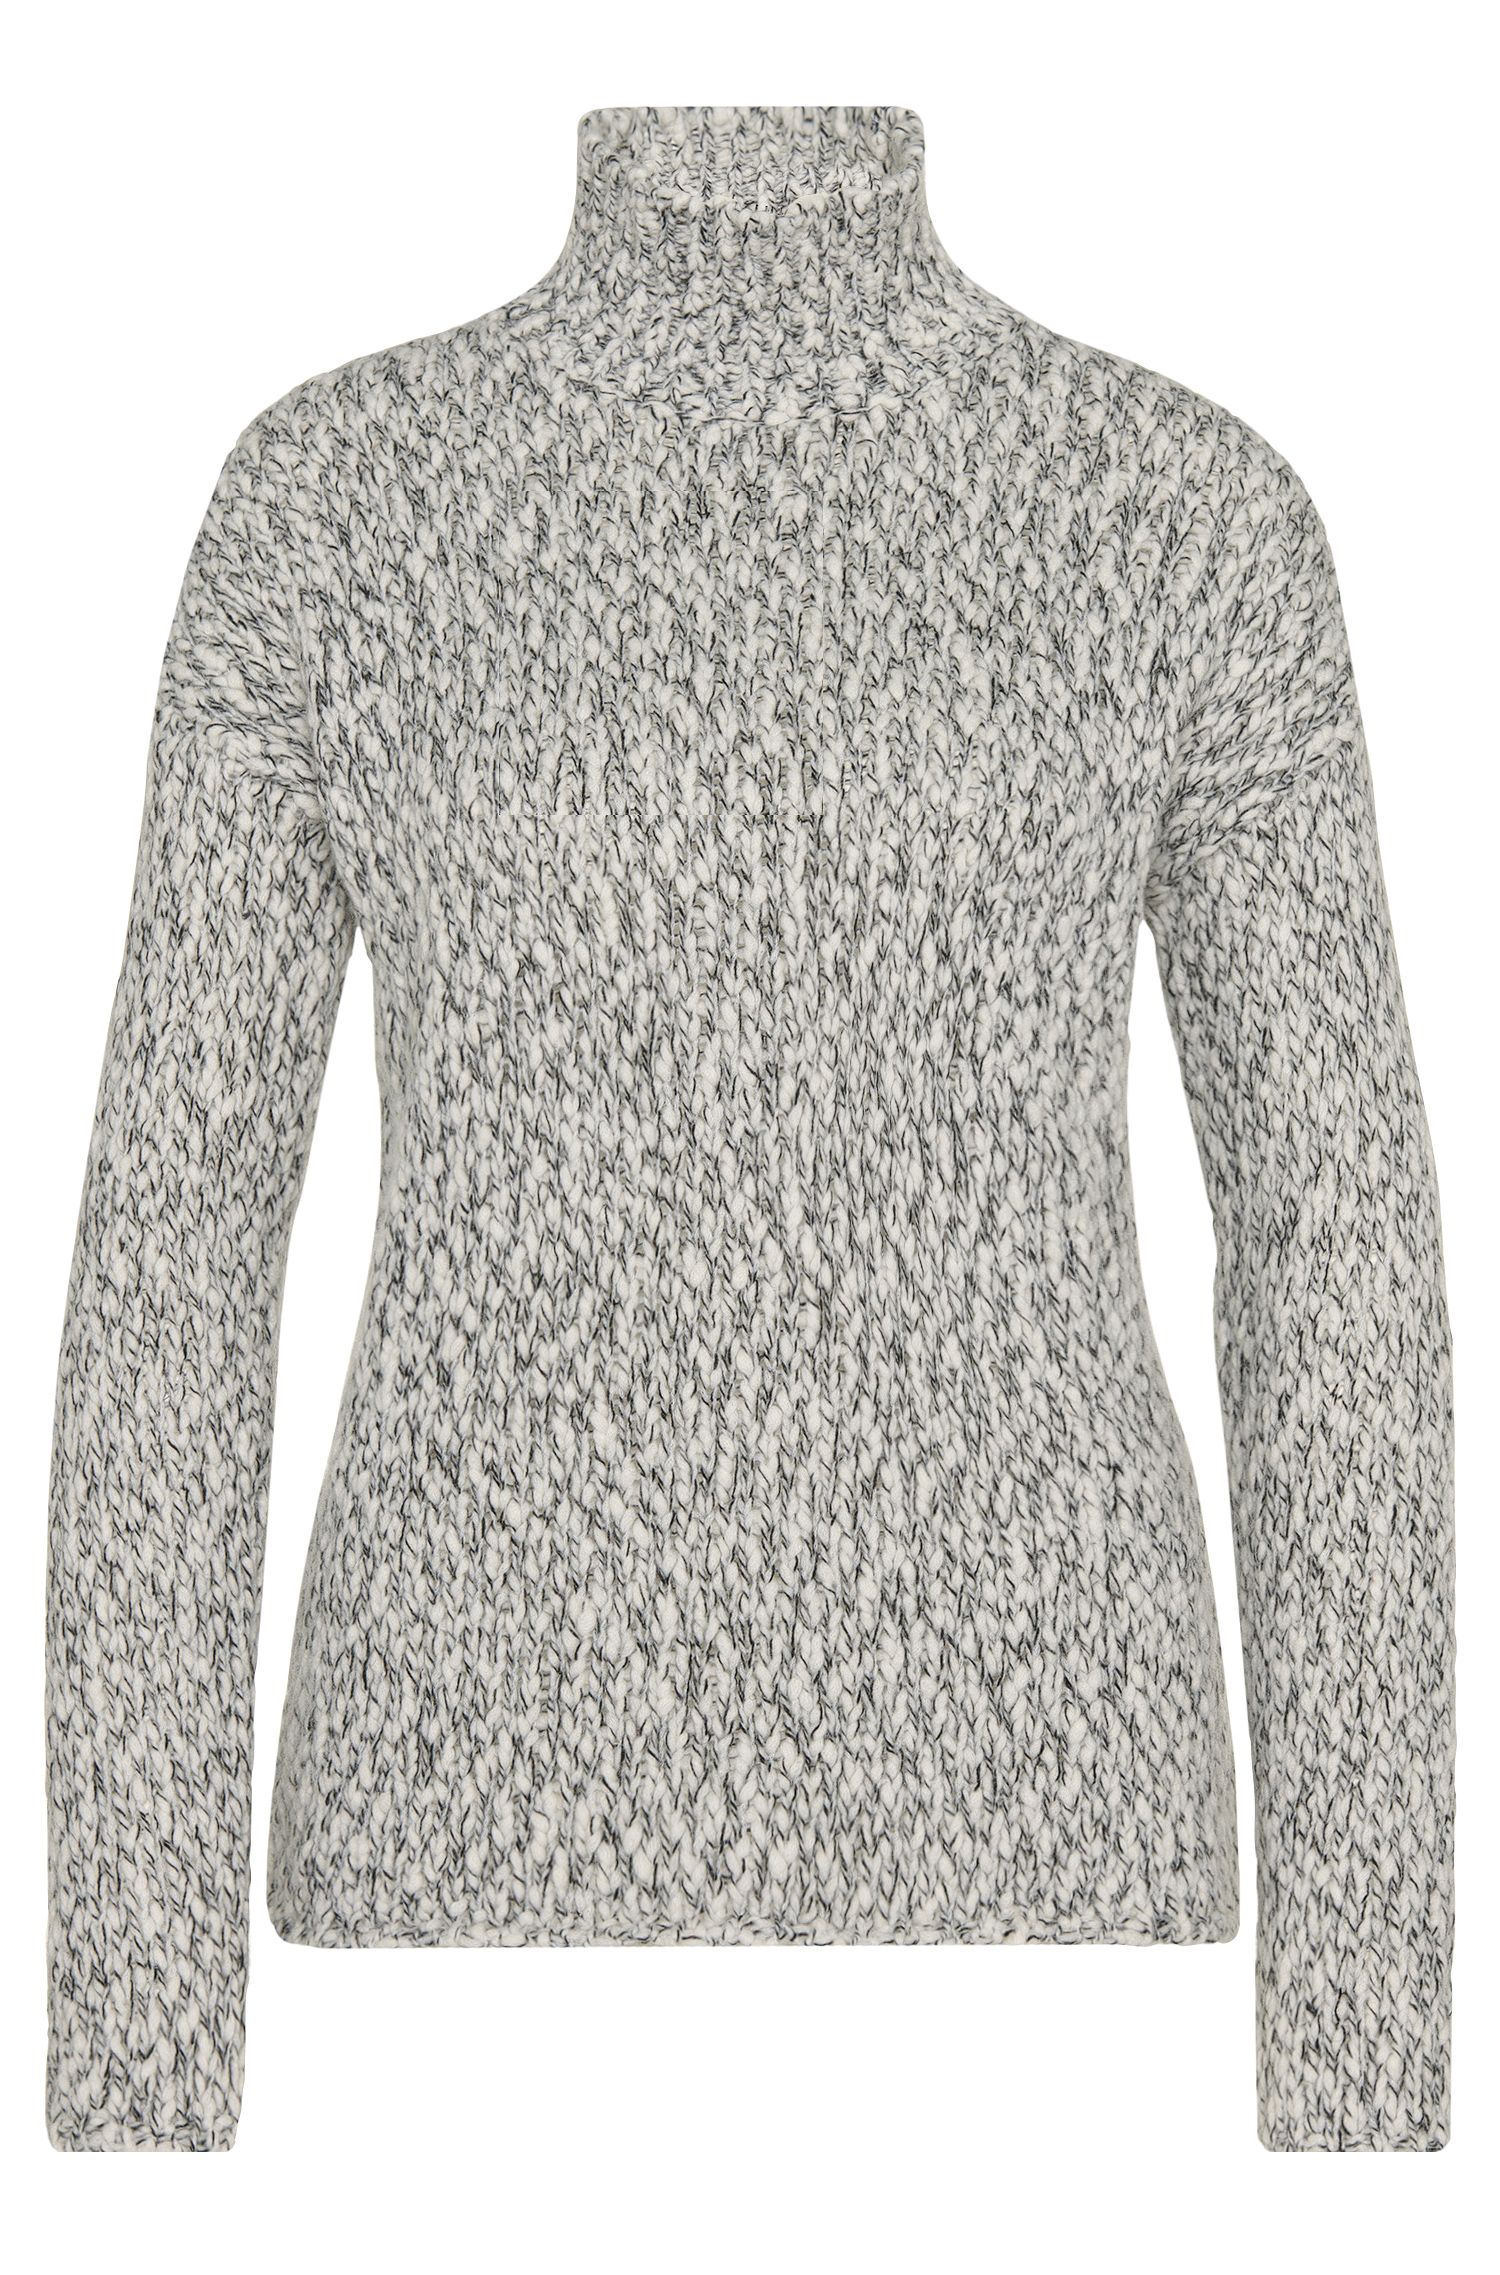 'Starly' | Wool Blend Mock Turtleneck